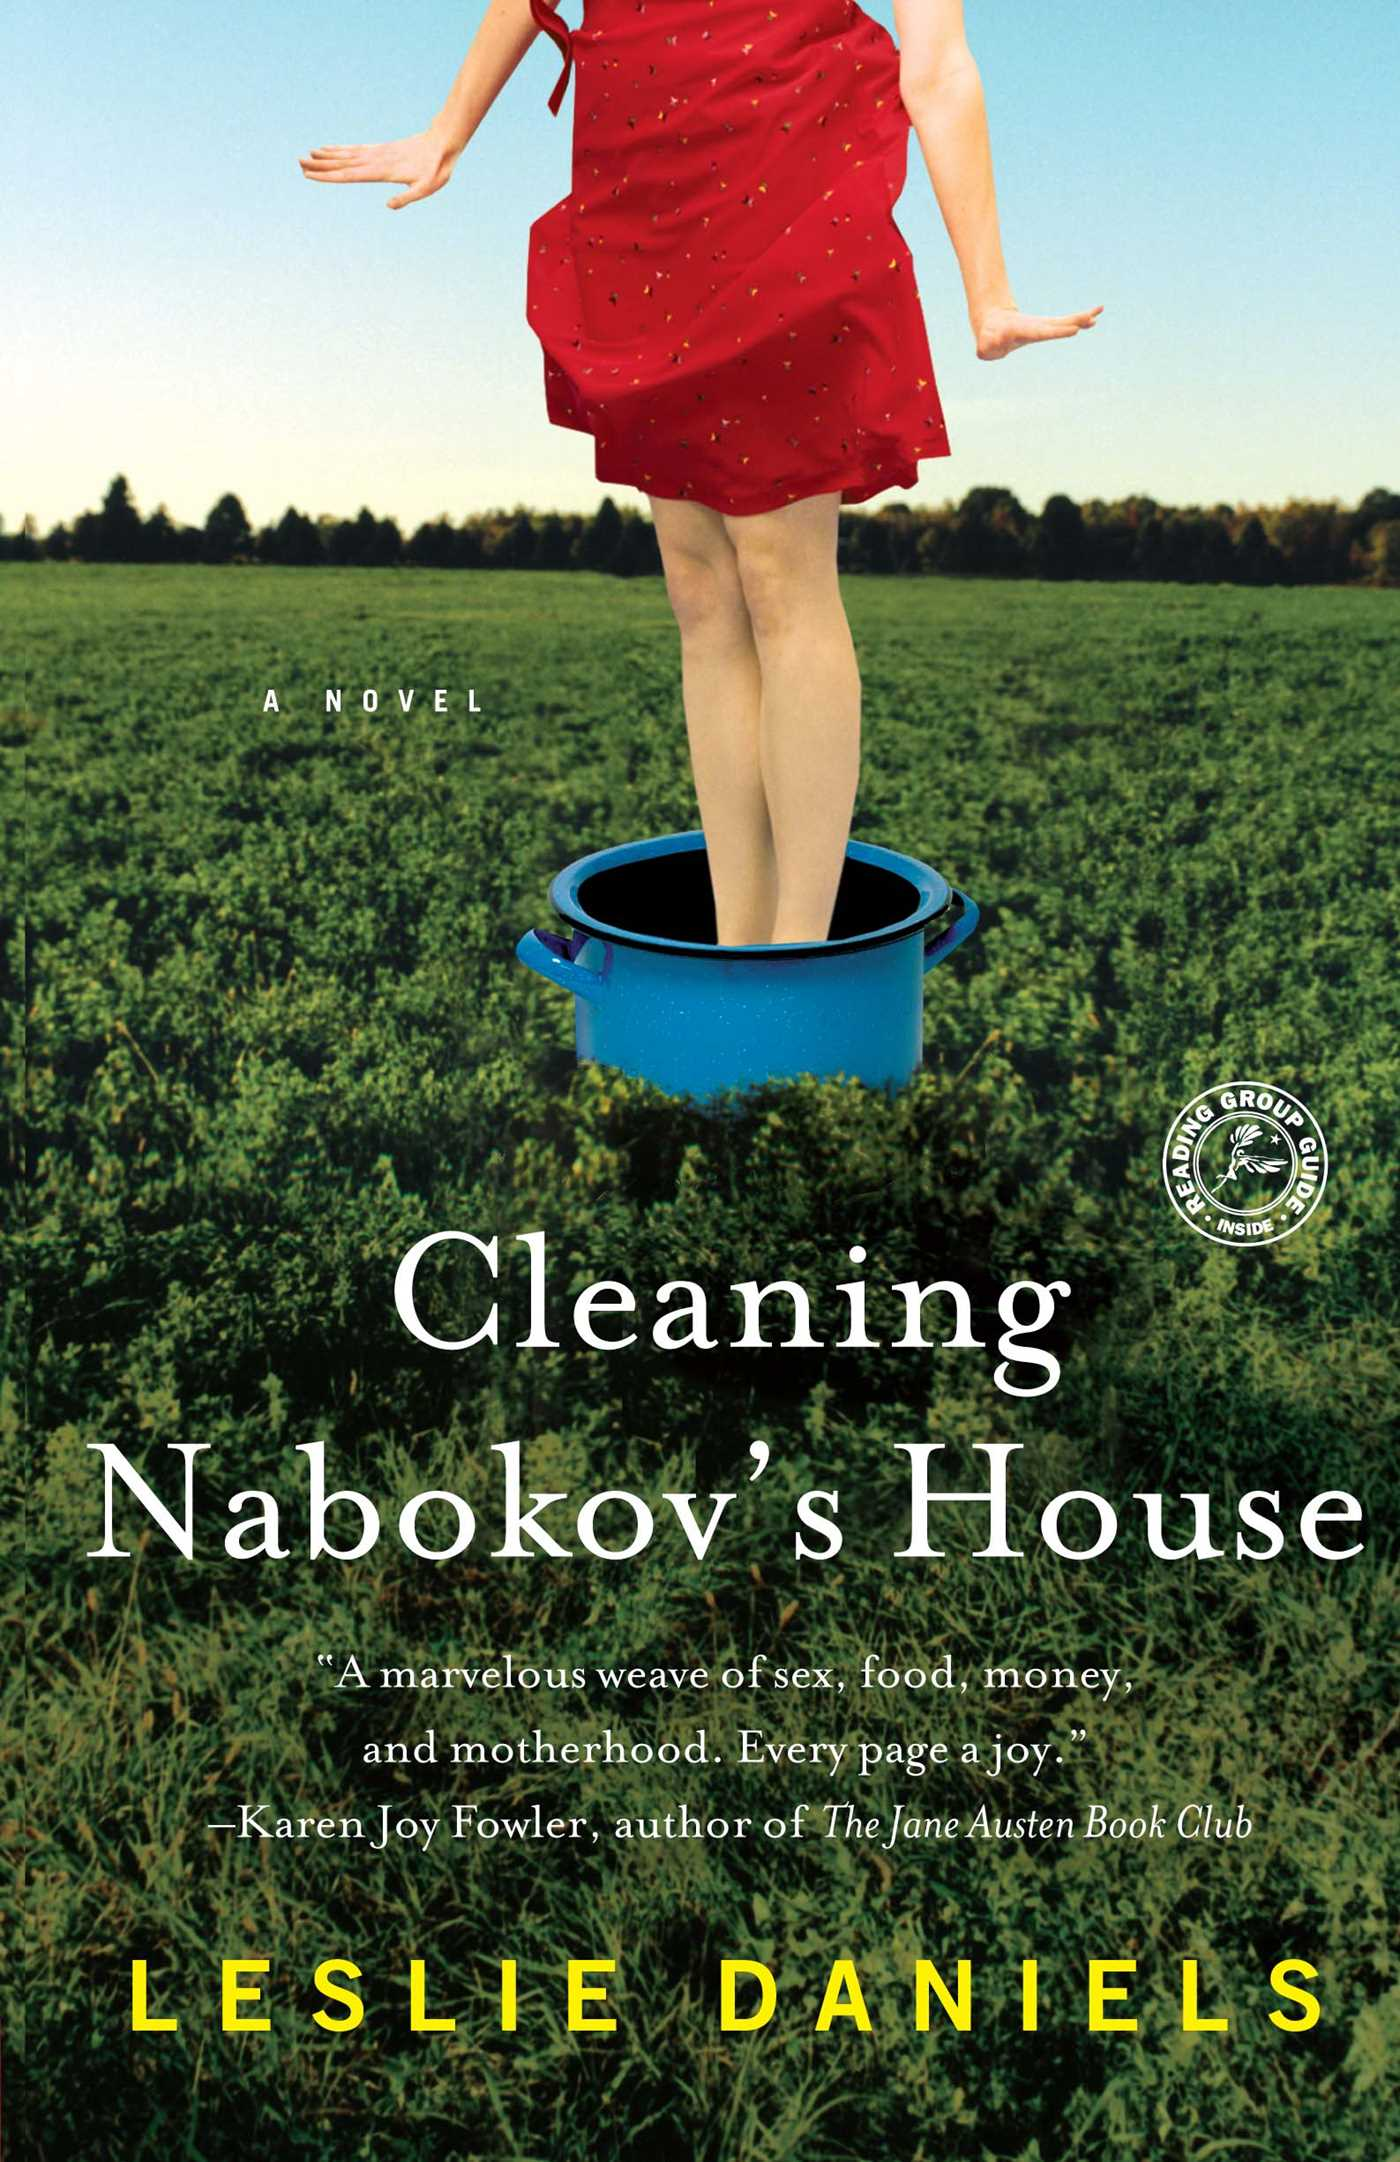 Cleaning nabokovs house 9781439195031 hr